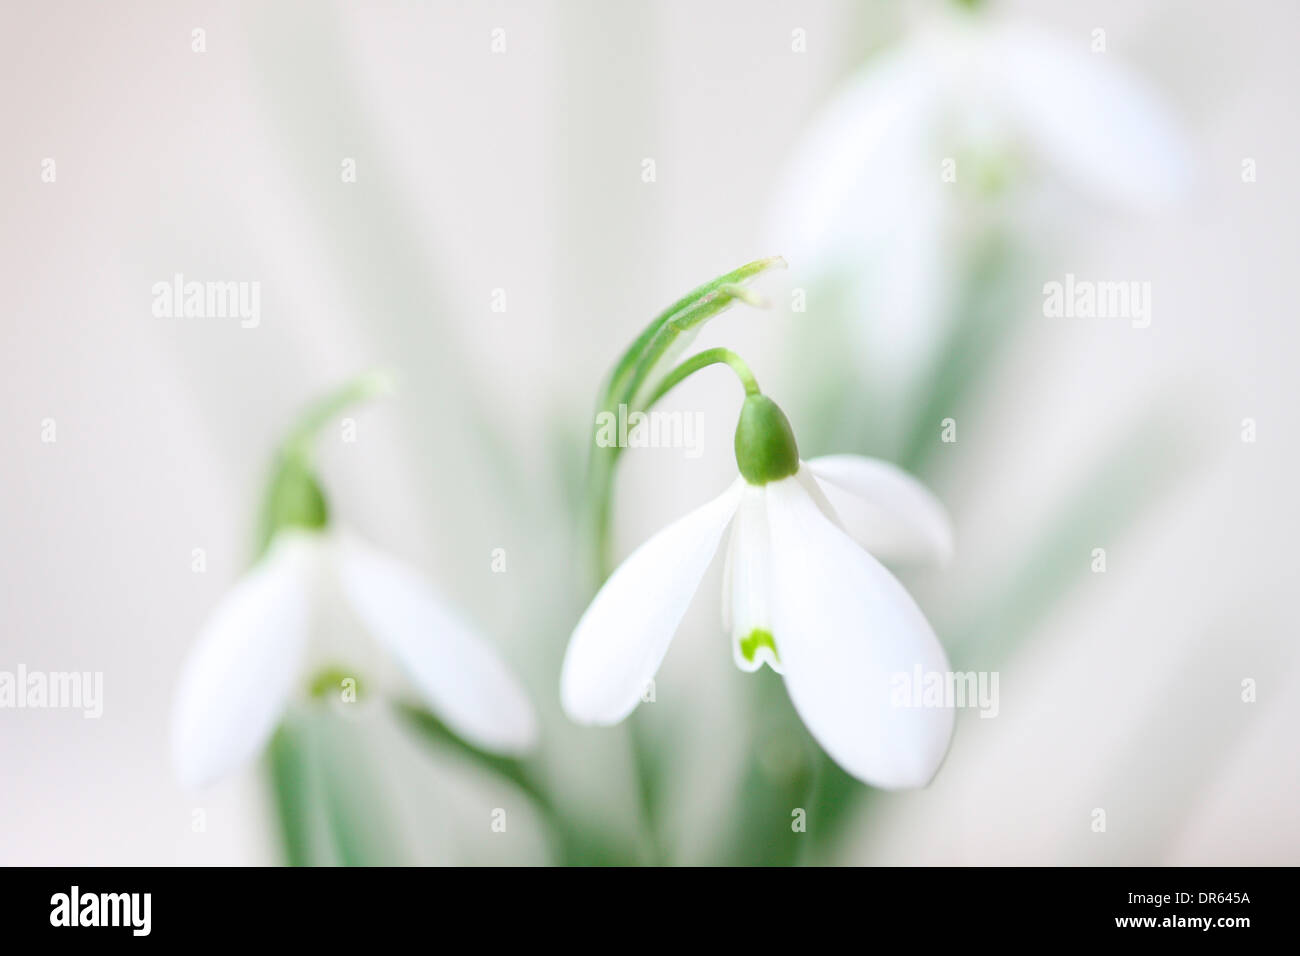 minimal and contemporary image of the classic snowdrop galanthus  Jane Ann Butler Photography  JABP1106 - Stock Image